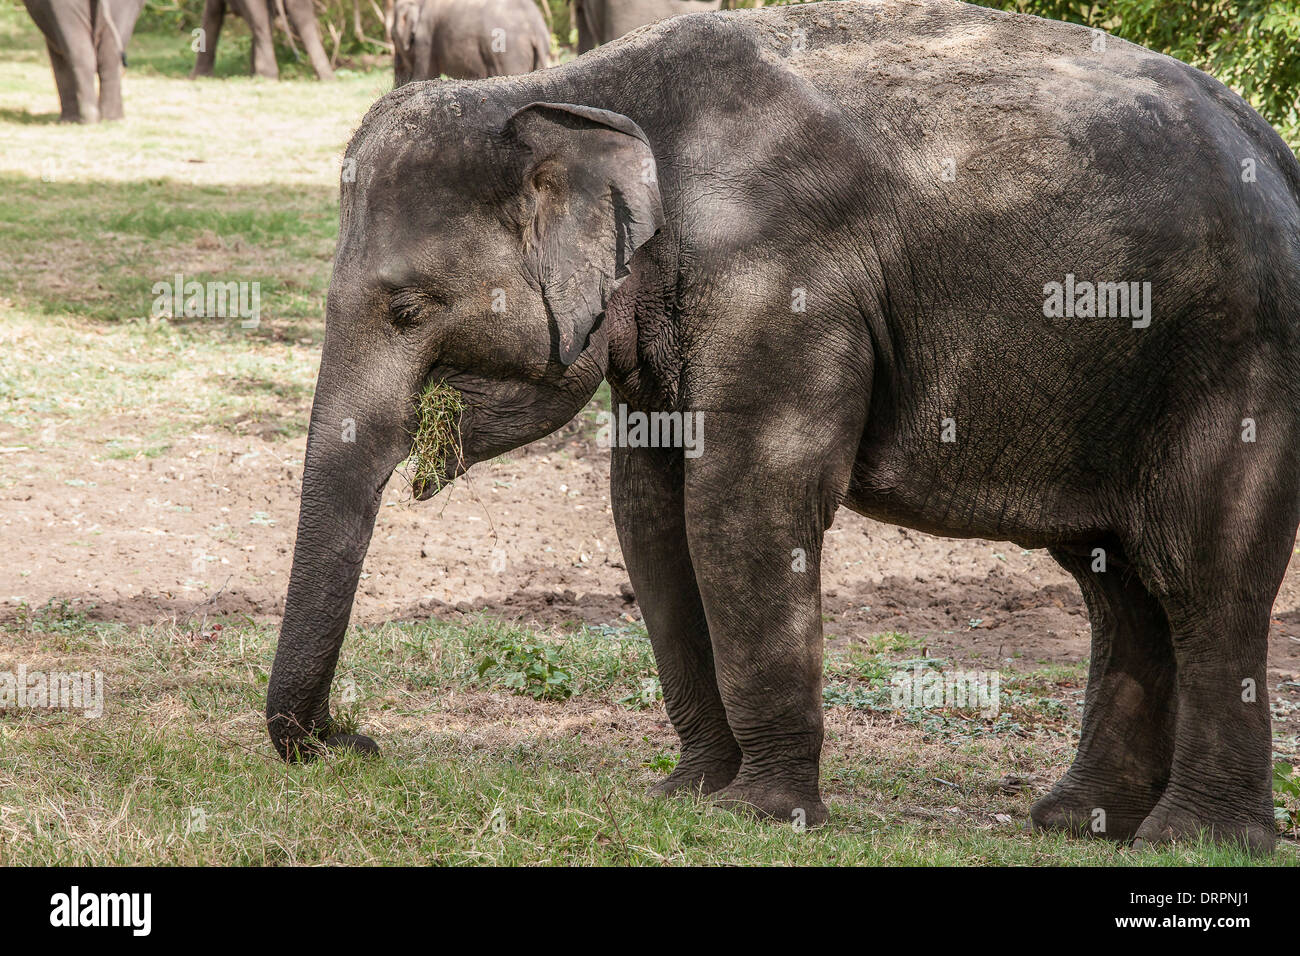 Grignotage éléphant l'herbe dans le Parc National Minneriya, Sri Lanka Photo Stock